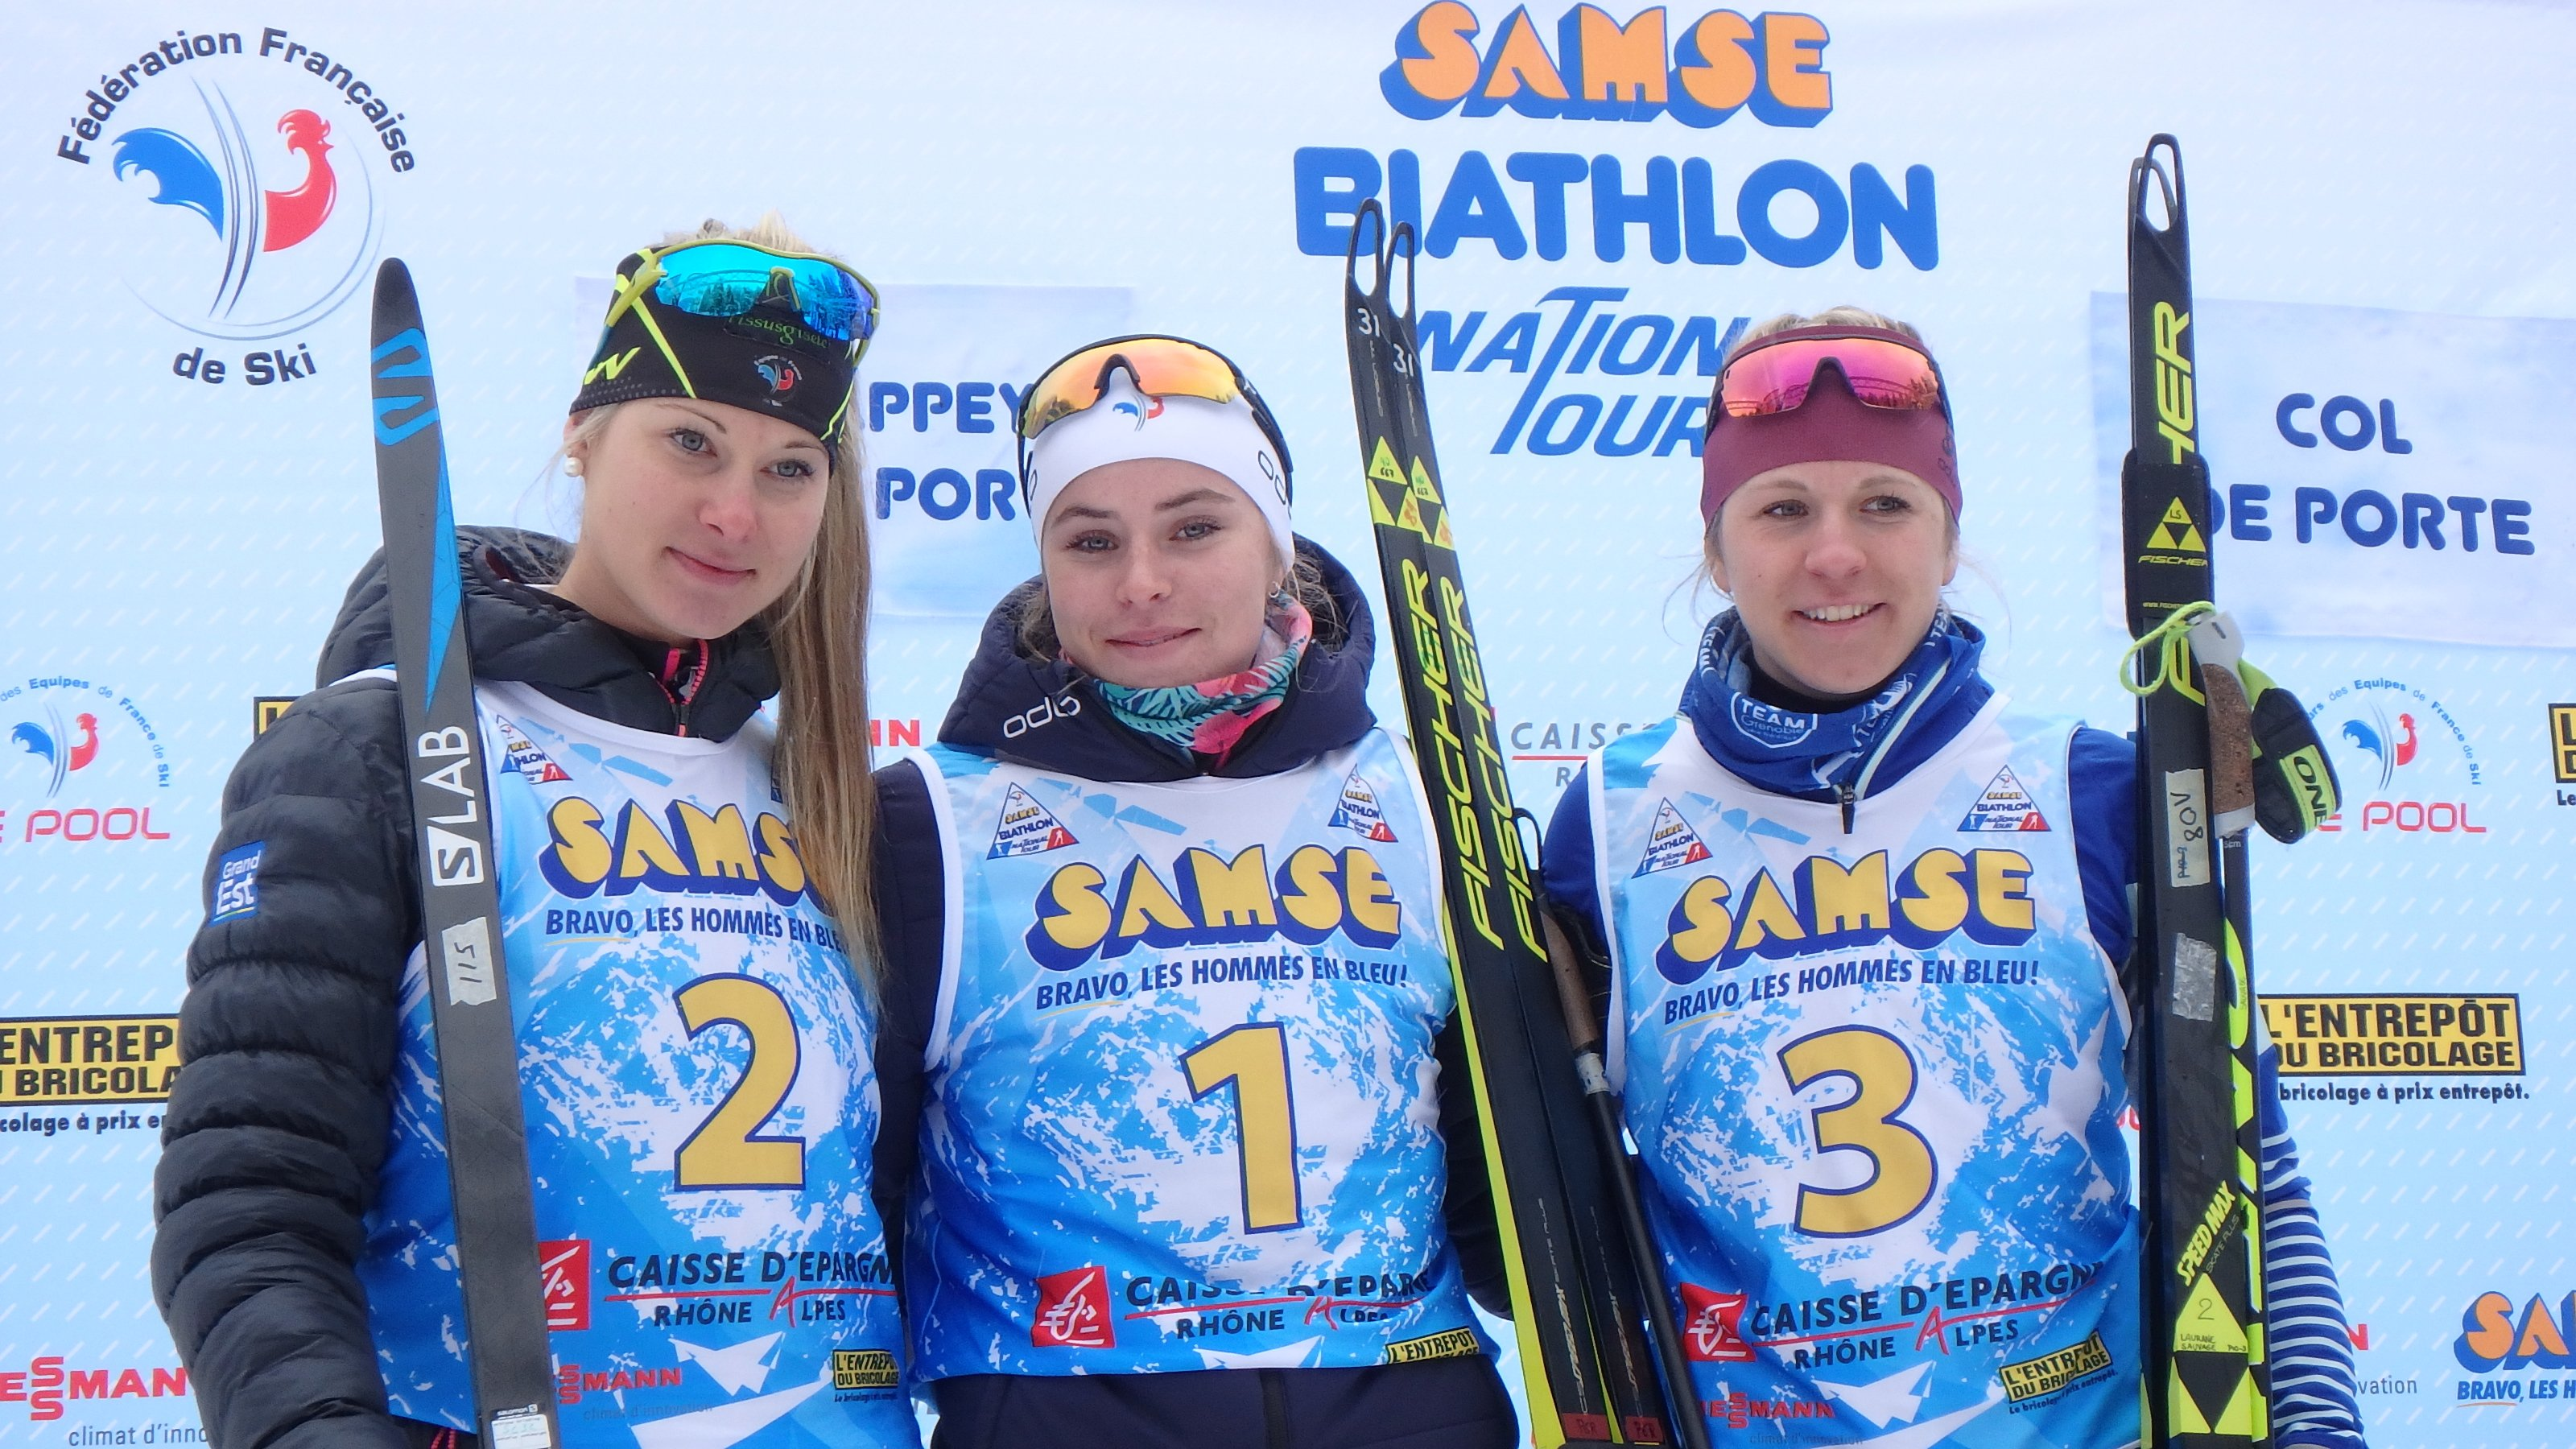 biathlon, Samse, coupe de France, col de porte, poursuite, hiver, sports d'hiver, Nordic Magazine